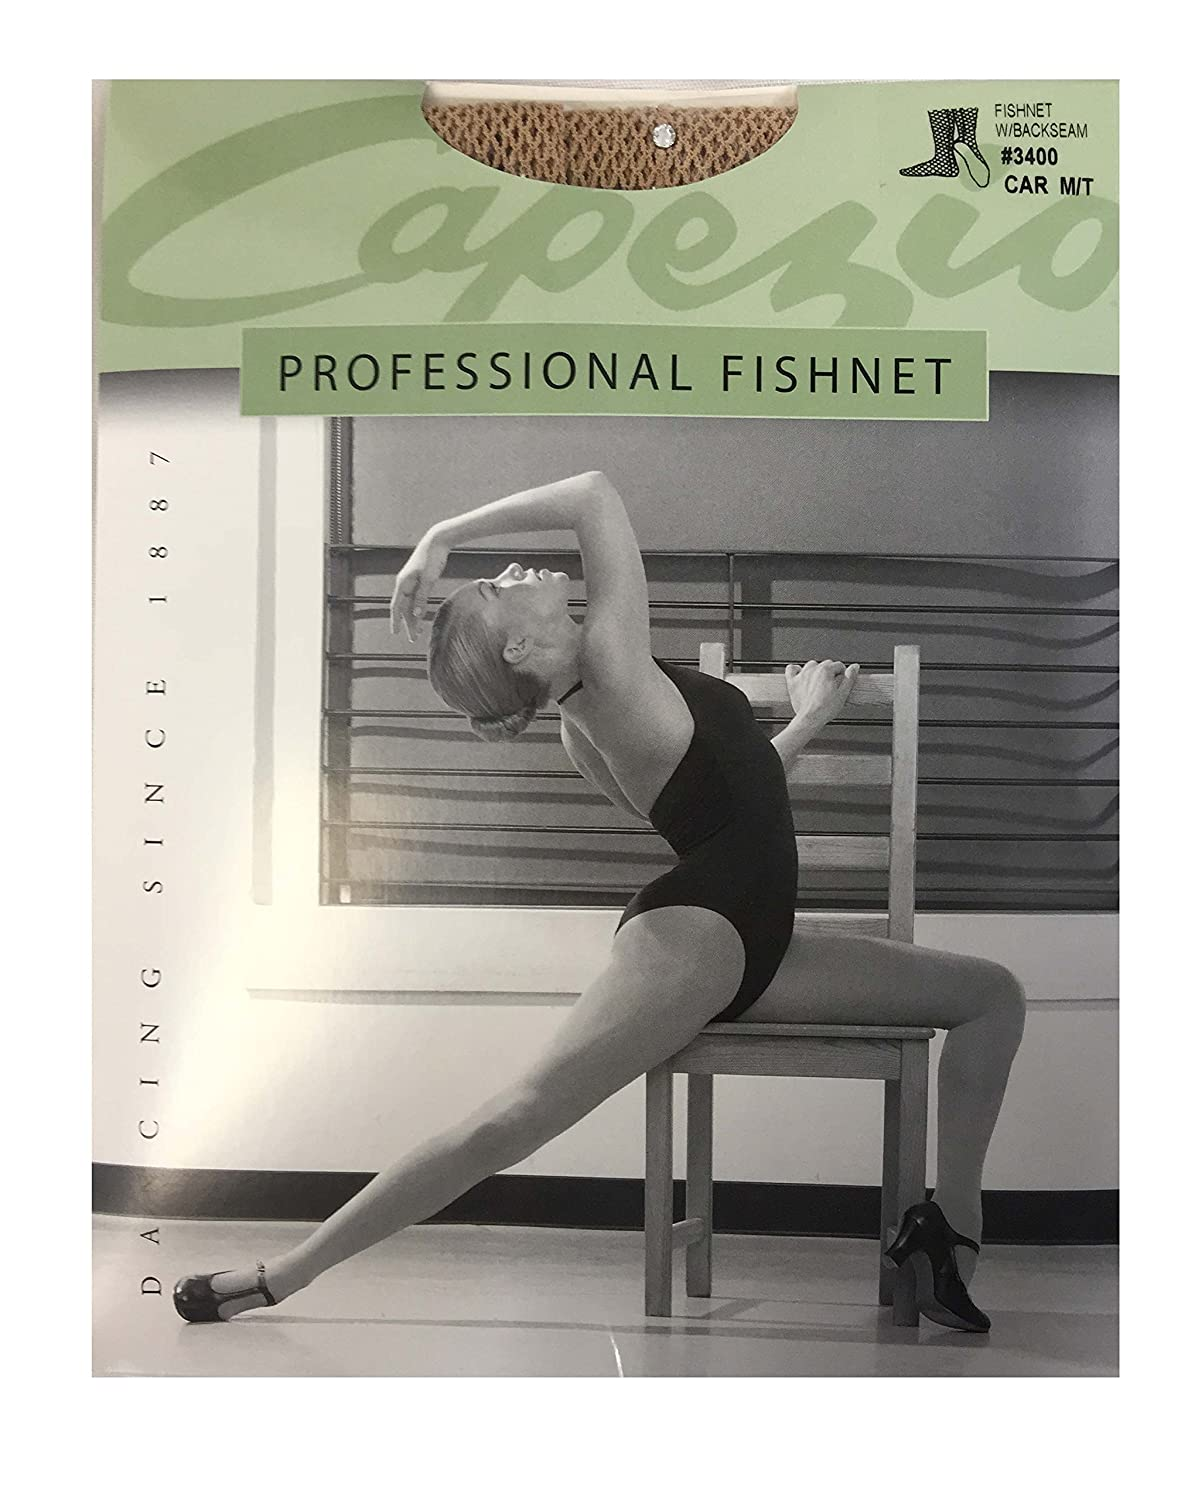 70887a7163219 Capezio Swarovski Rhinestones Fishnet Seamed Tights 3400 at Amazon Women's  Clothing store: